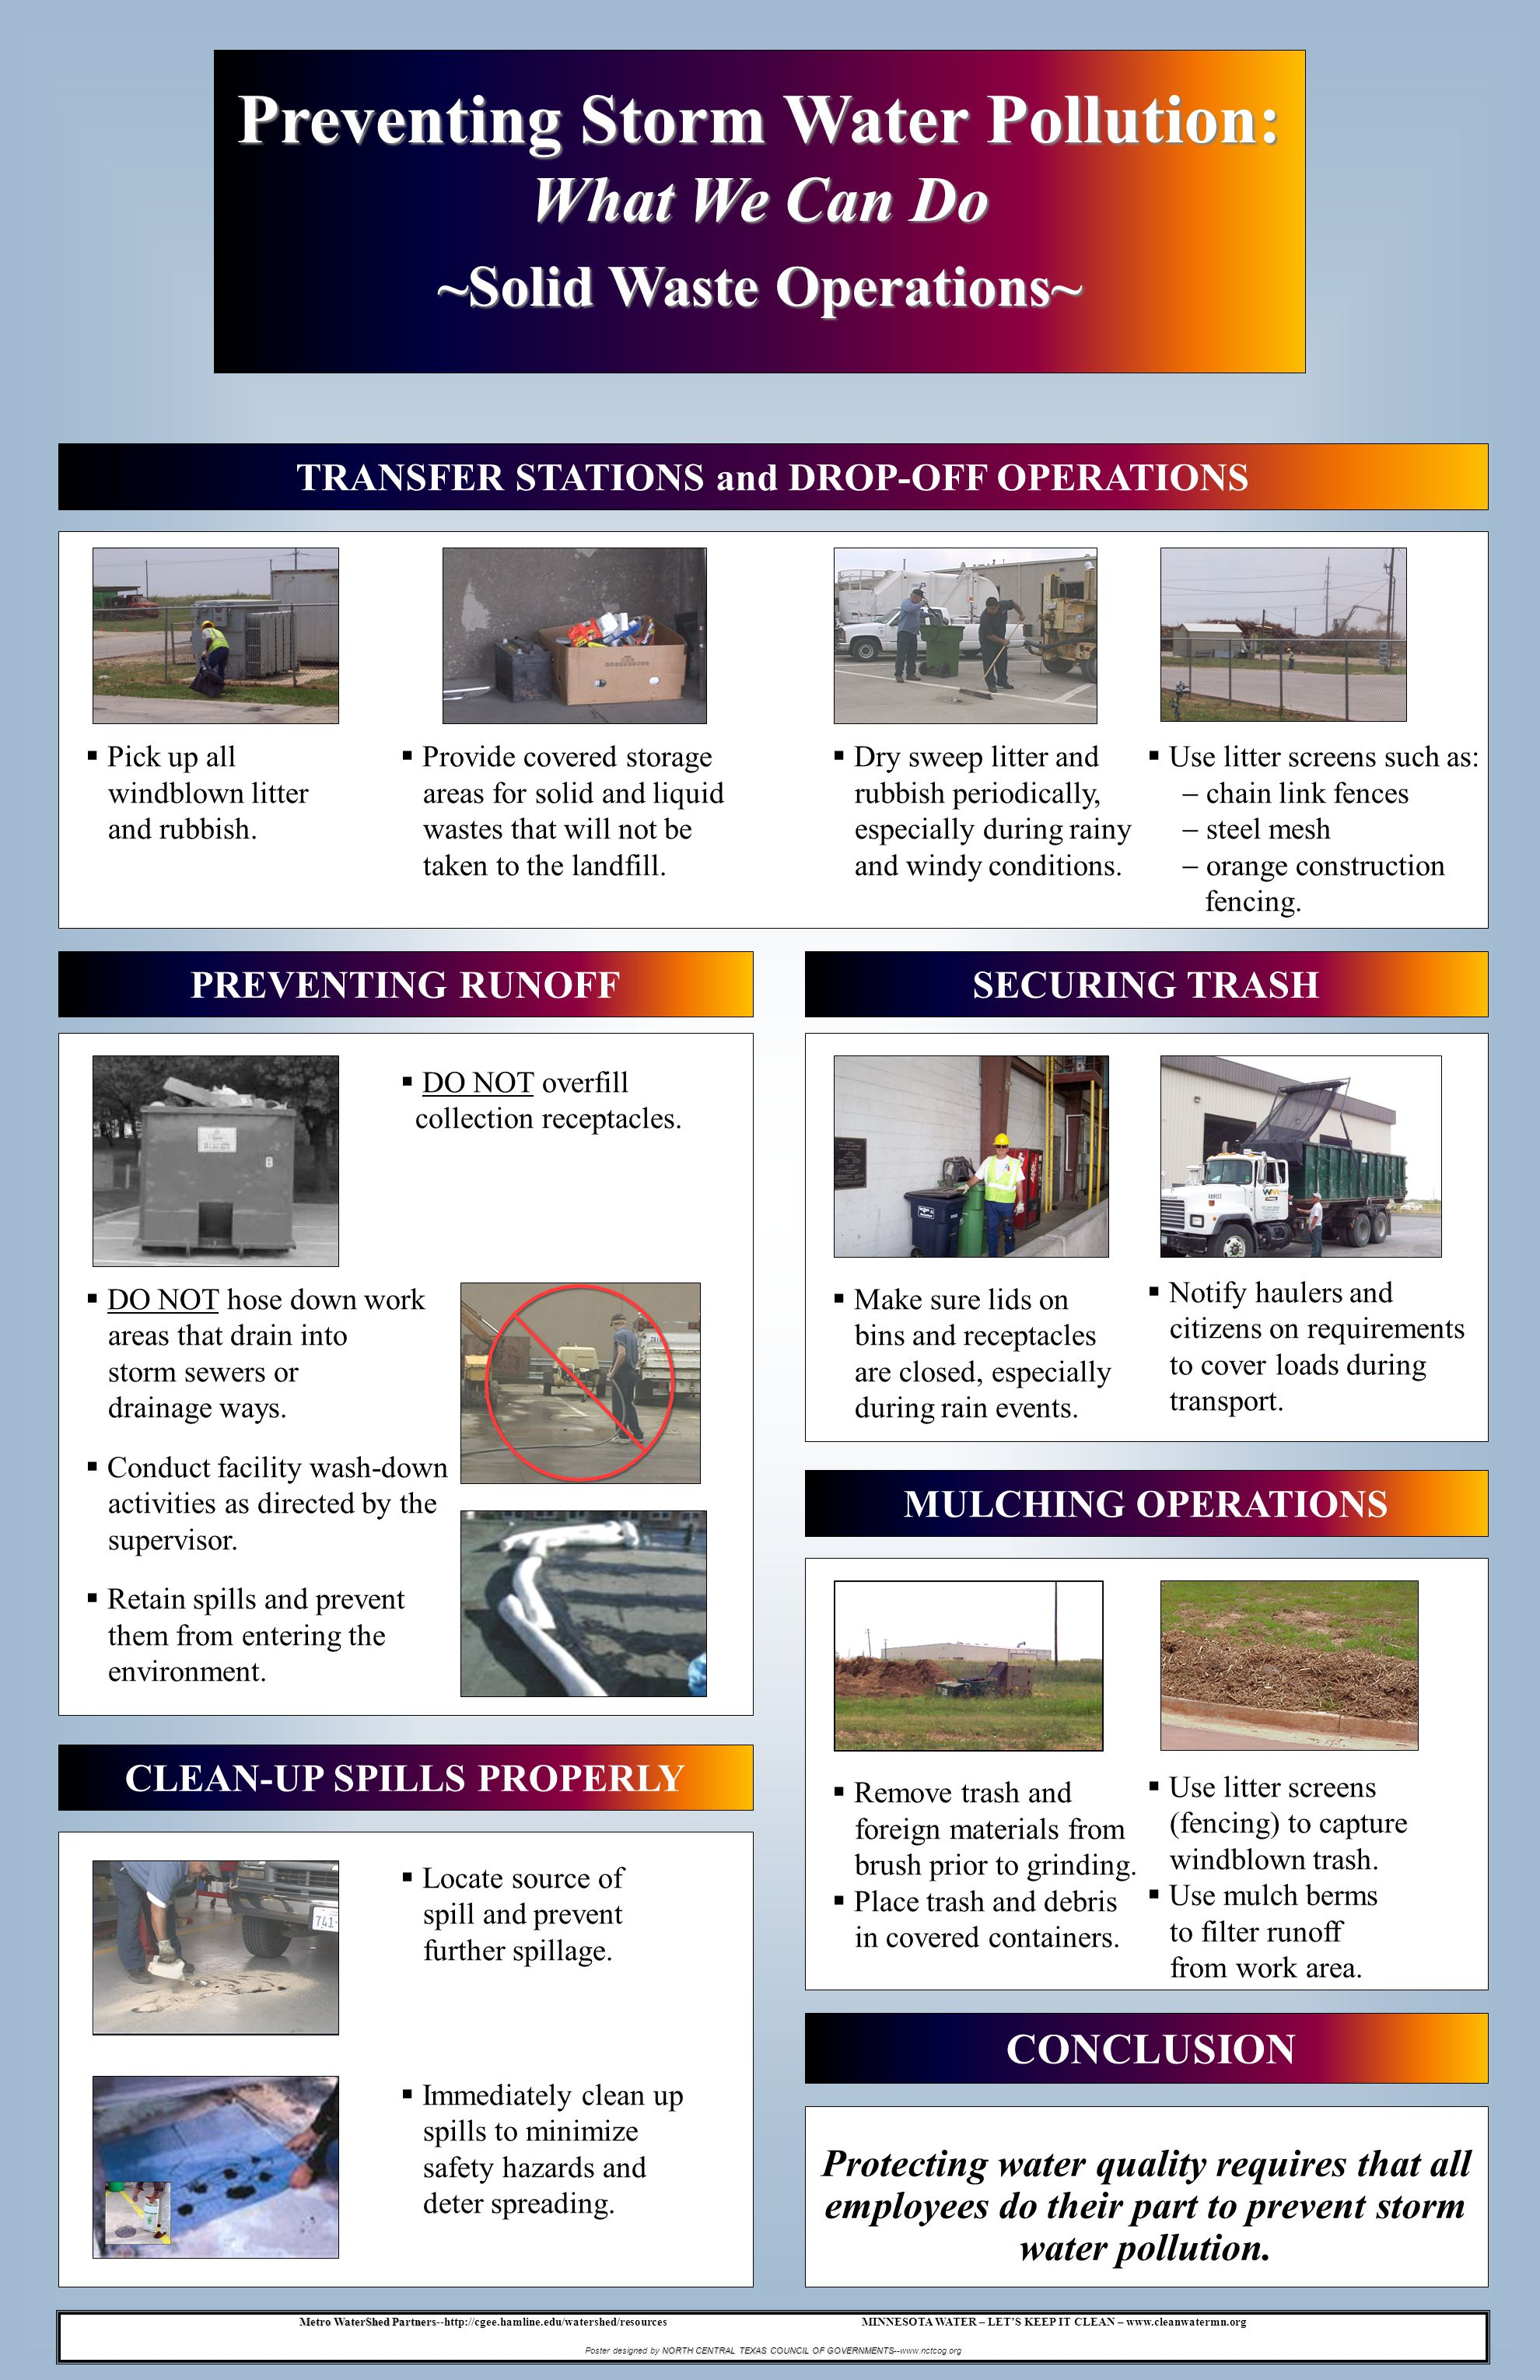 TRANSFER STATIONS and DROP-OFF OPERATIONS Protecting water quality requires that all employees do their part to prevent storm water pollution. CONCLUS